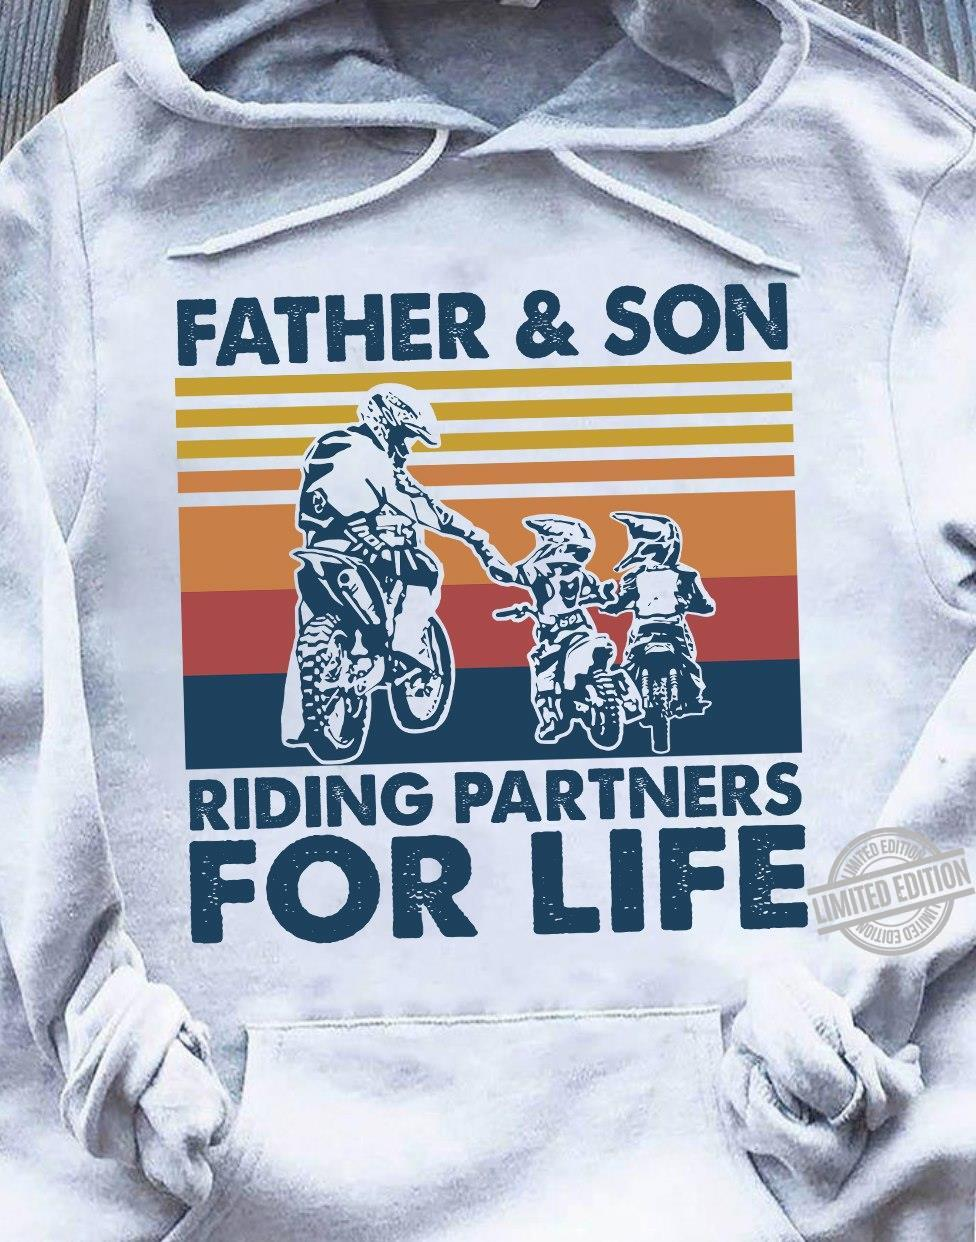 Father & Son Riding Partners For Life Shirt